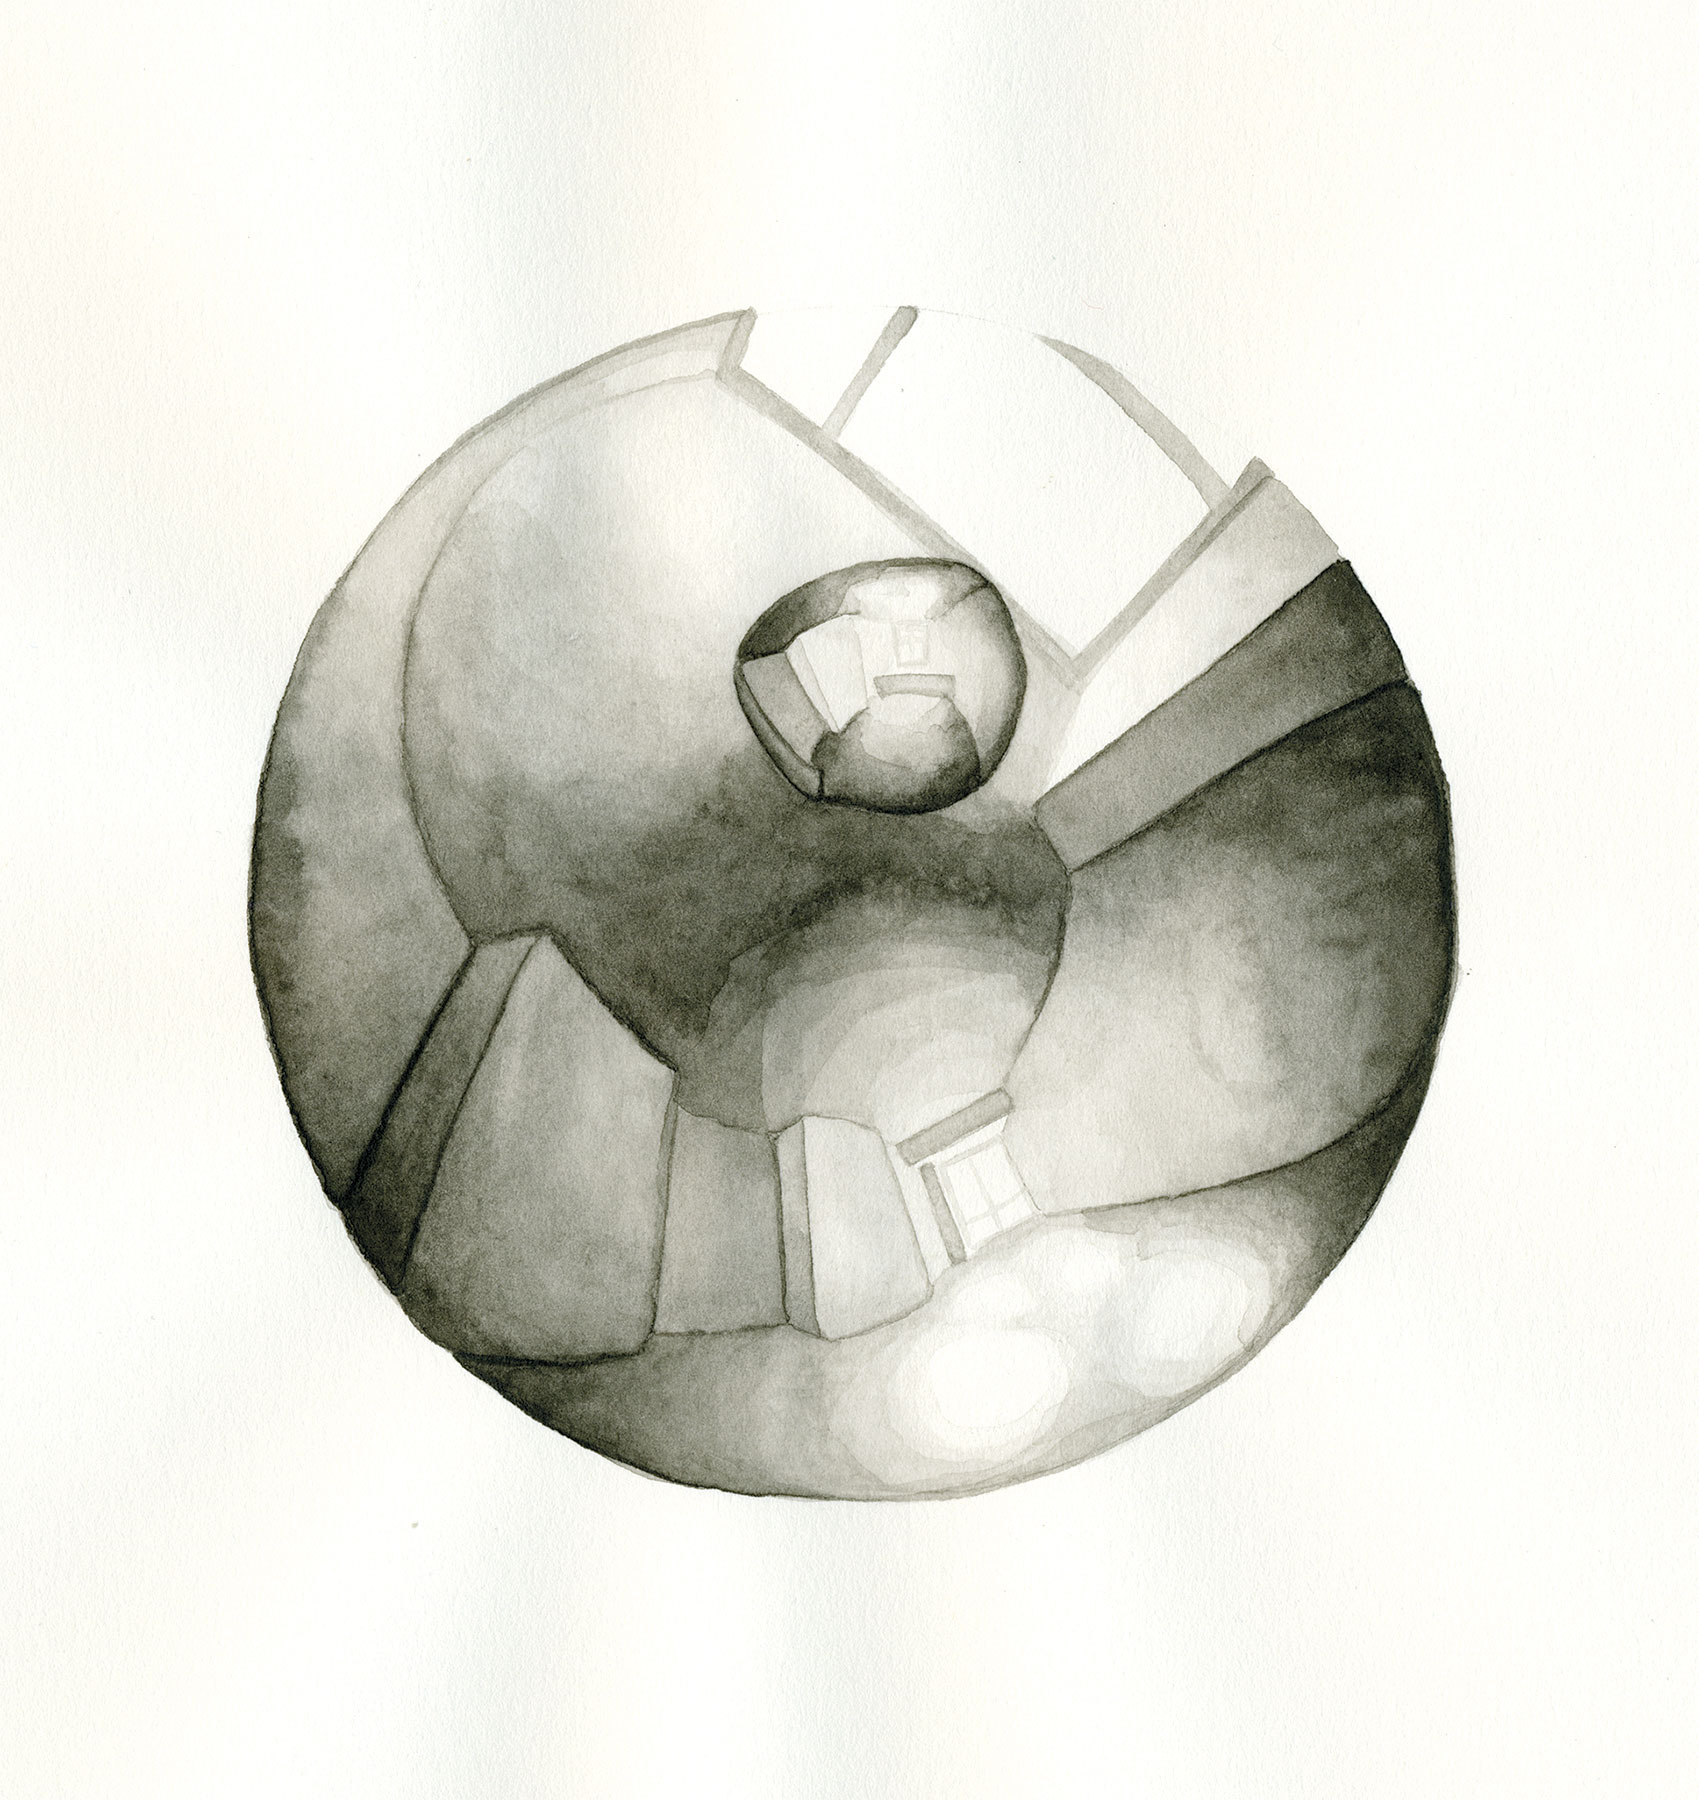 LENSING 3, 2015, 9 X 8 1/2 INCHES, WATERCOLOR ON PAPER